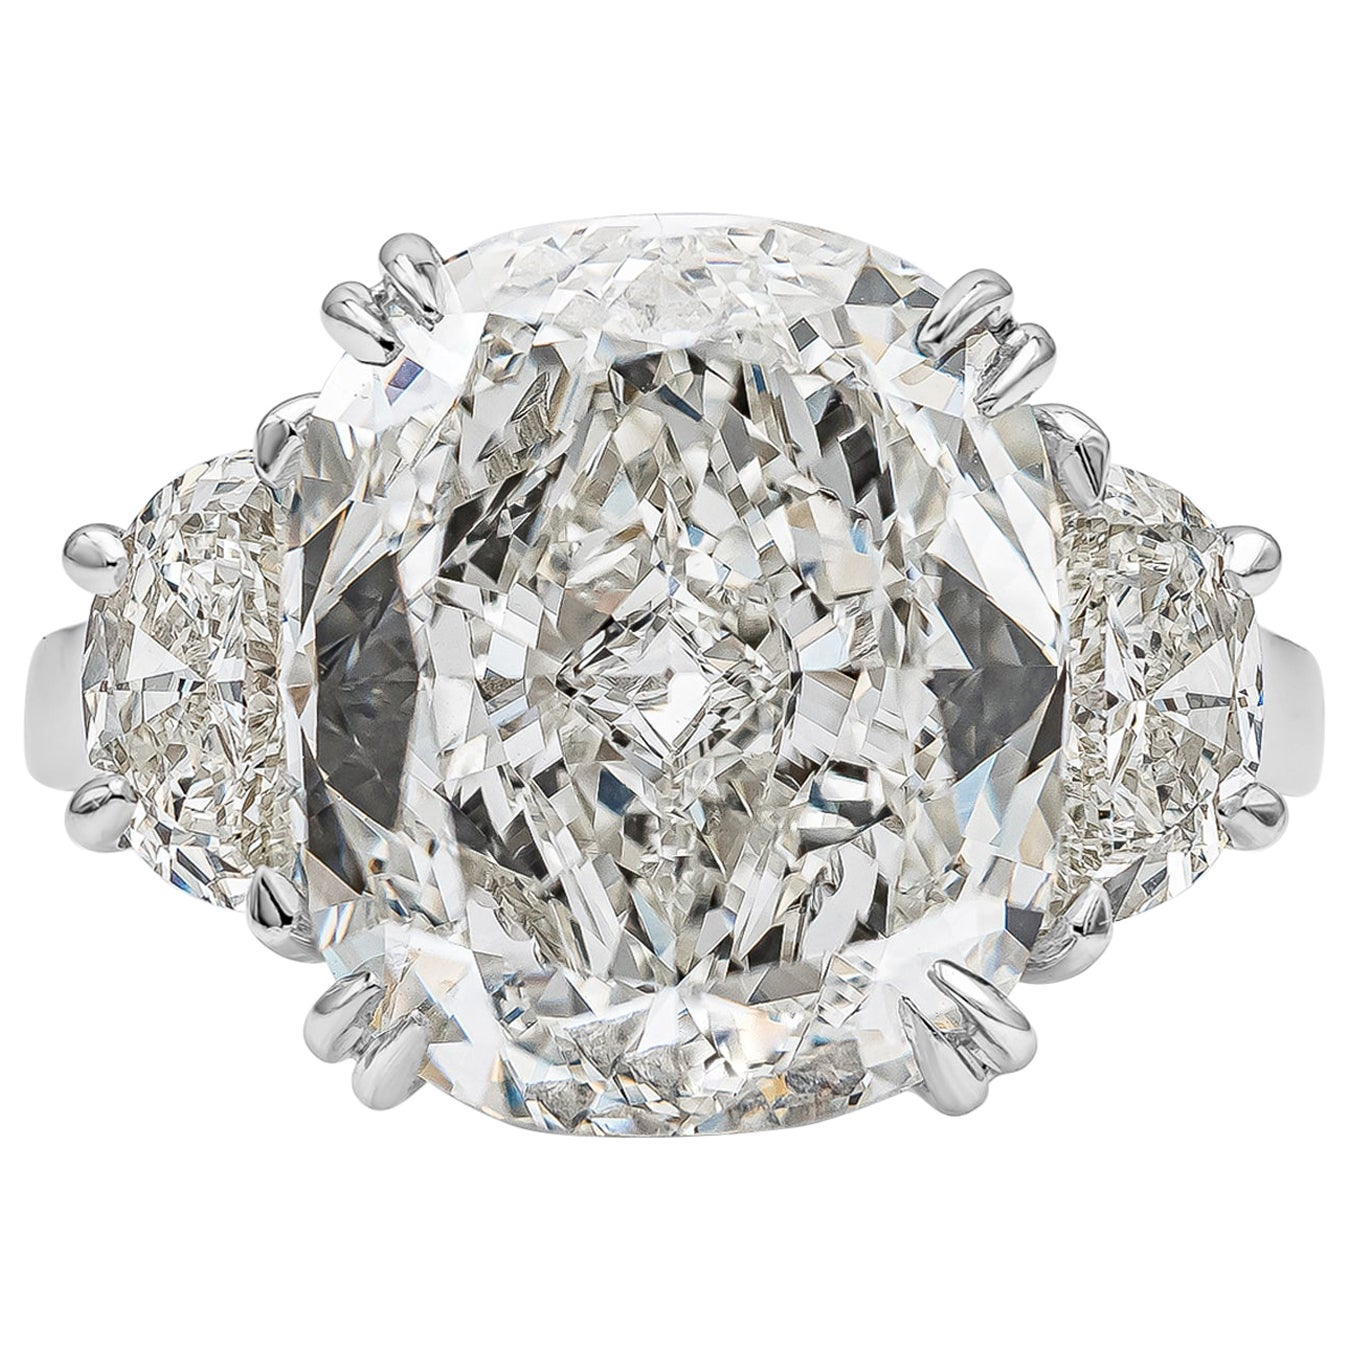 GIA Certified 10.02 Carat Cushion Cut Diamond Three-Stone Engagement Ring